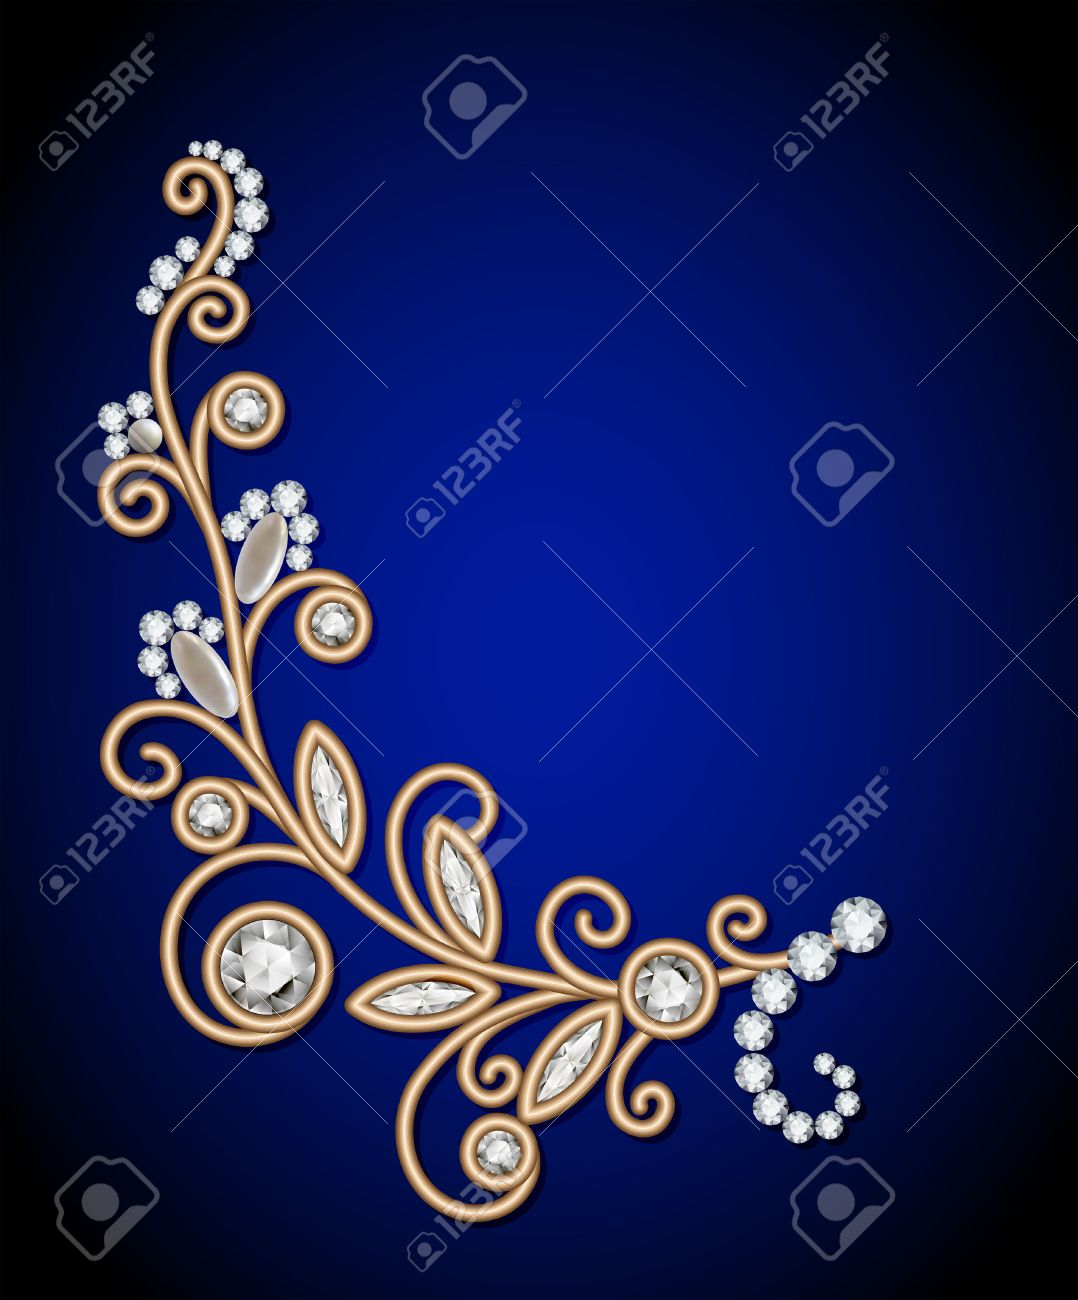 Gold jewelry background with diamond sprig, jewellery floral decoration, elegant greeting card or invitation template - 40701769